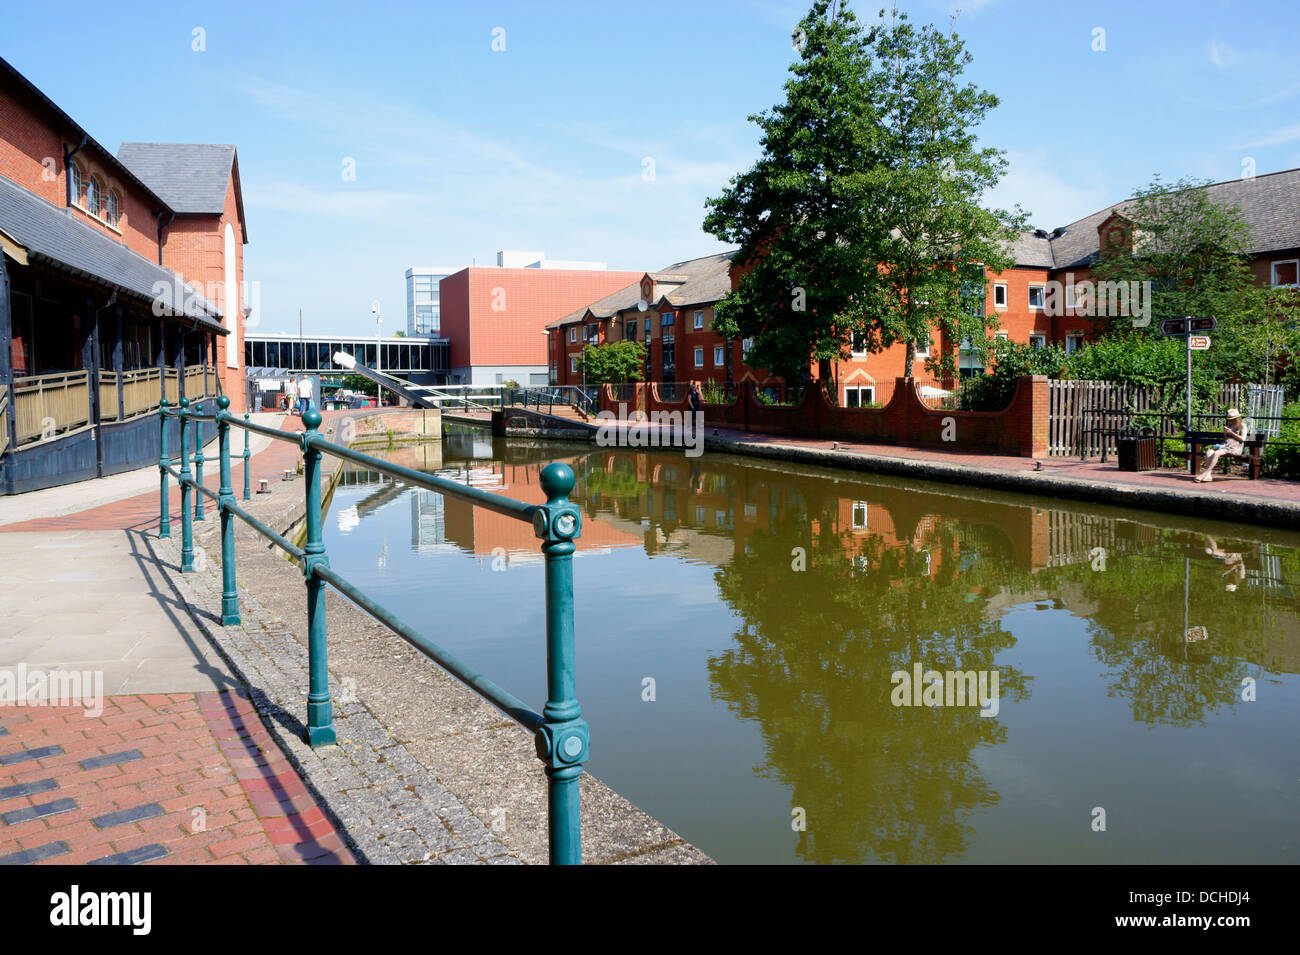 Oxford Canal running alongside Castle Quay shopping centre in Banbury, Oxfordshire, England. - Stock Image